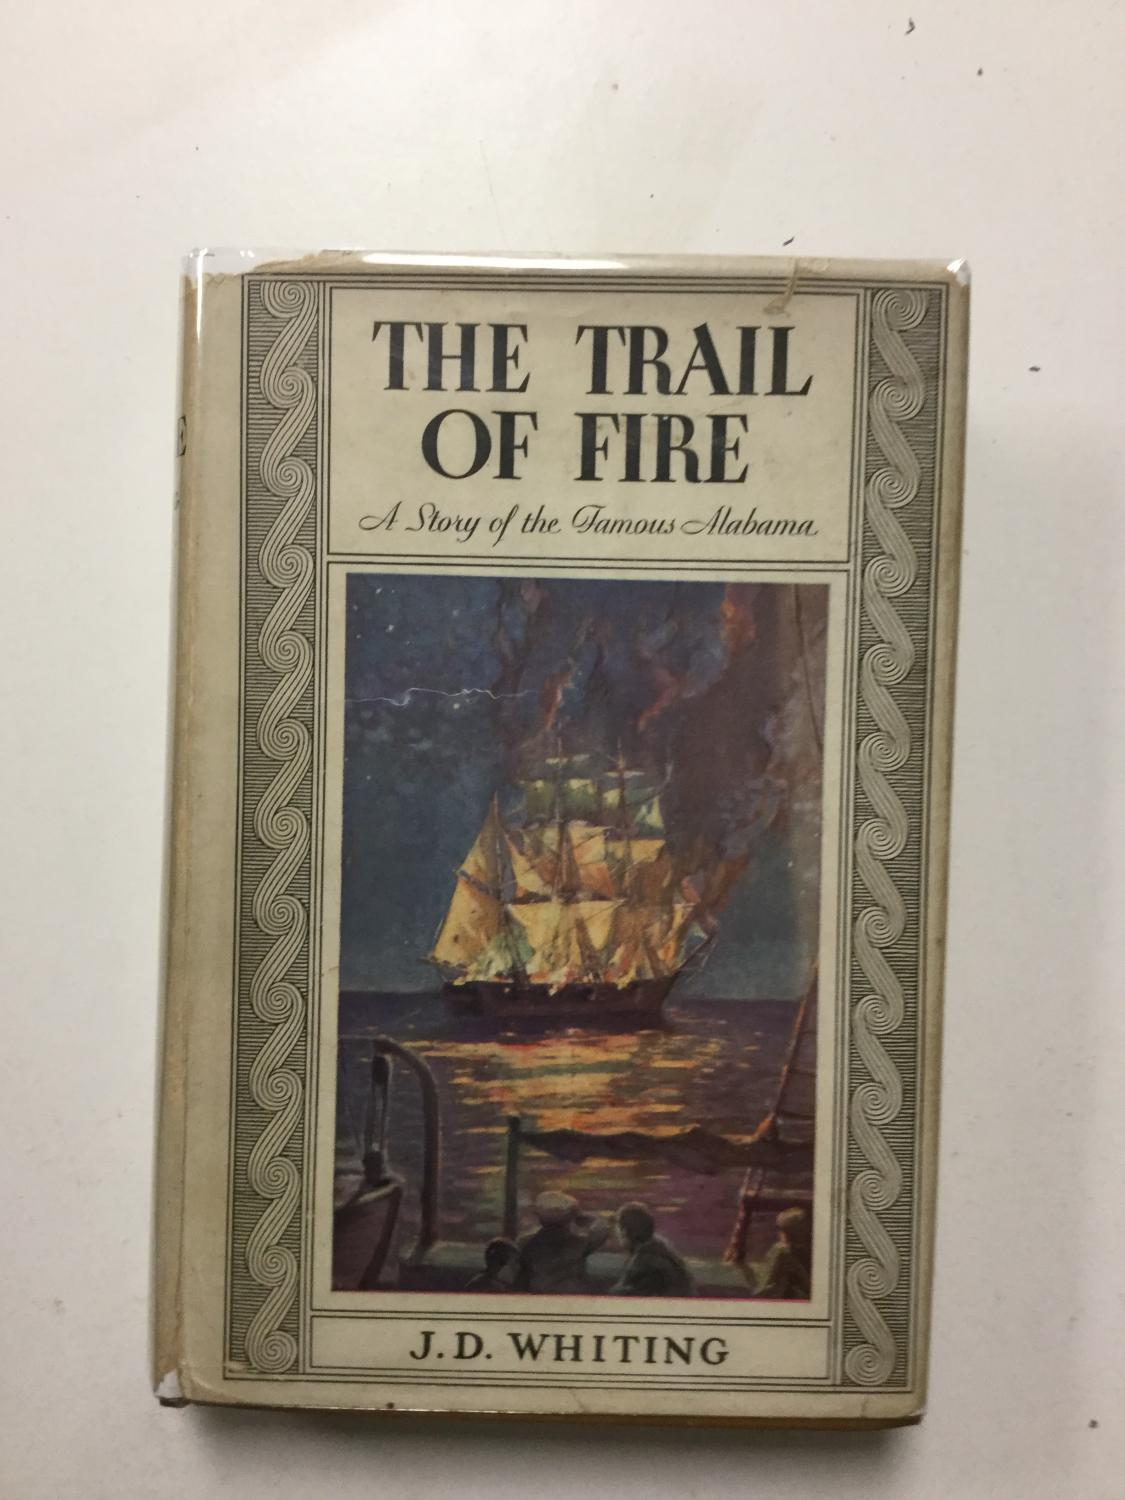 The_Trail_Of_Fire_A_Story_Of_The_Famous_Alabama_Whiting,_John_D._[Very_Good]_[Hardcover]